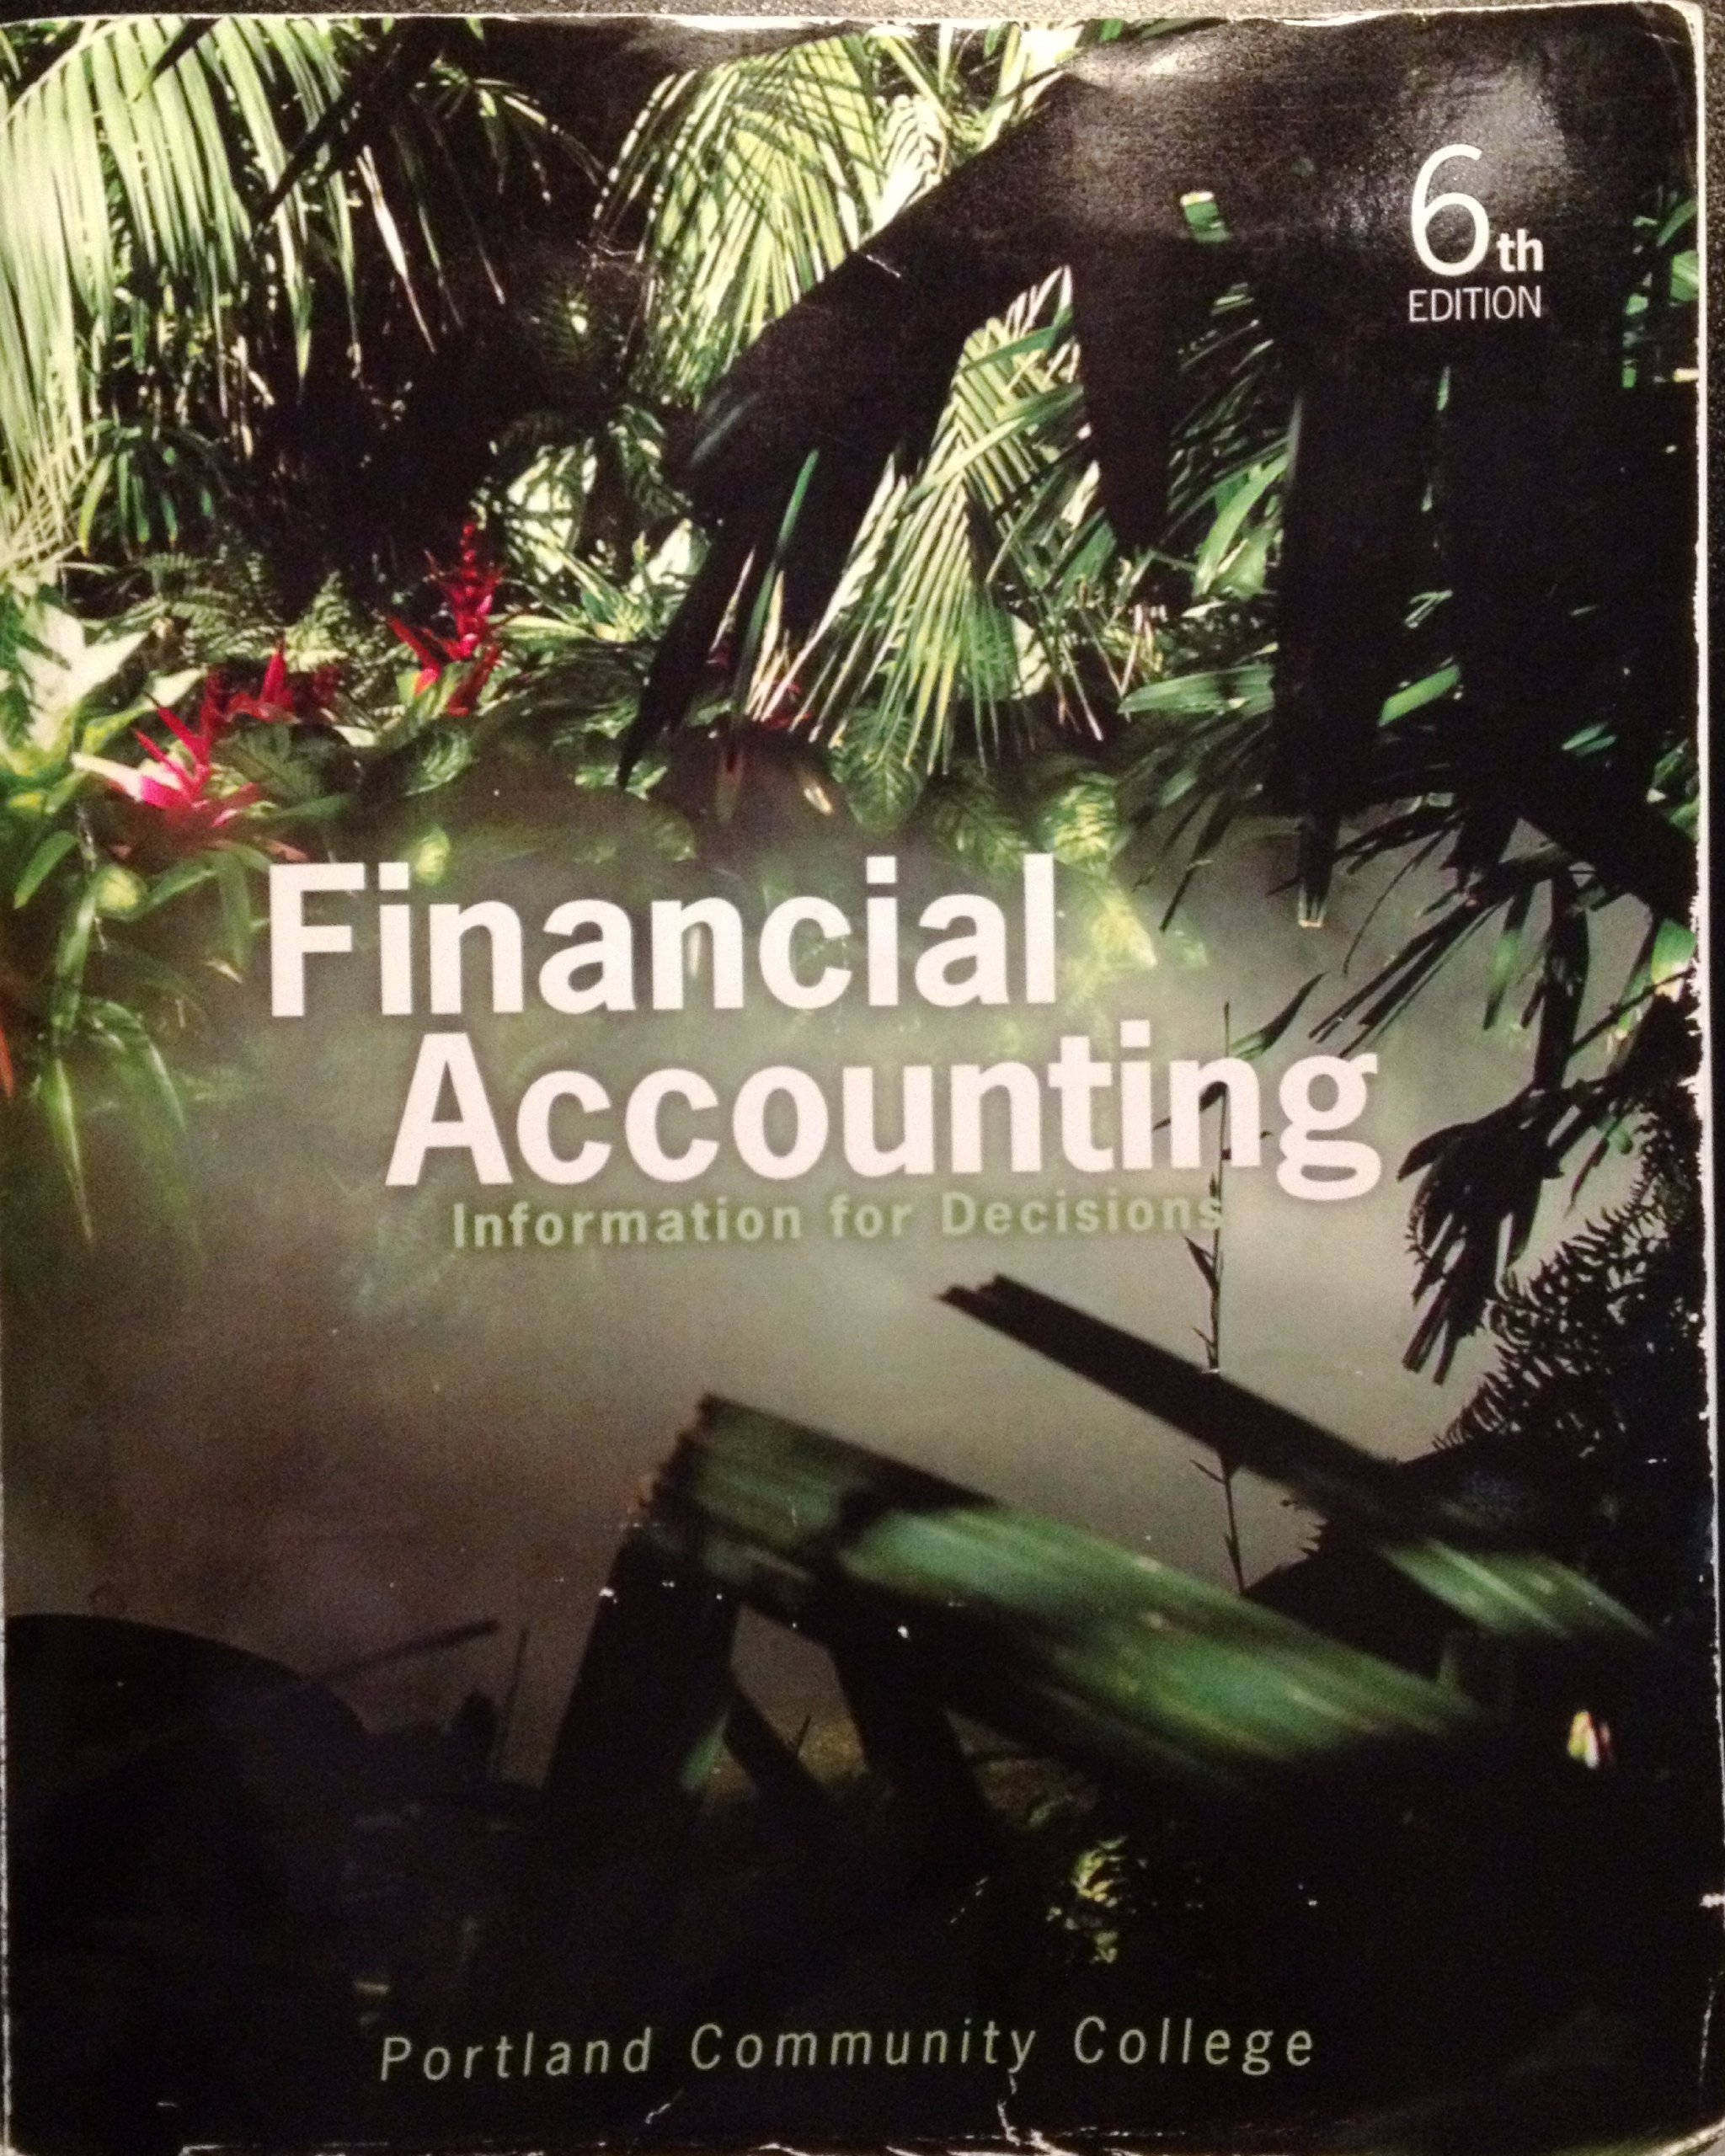 Financial Accounting Information for Decisions 6th Edition Portland Community College PDF